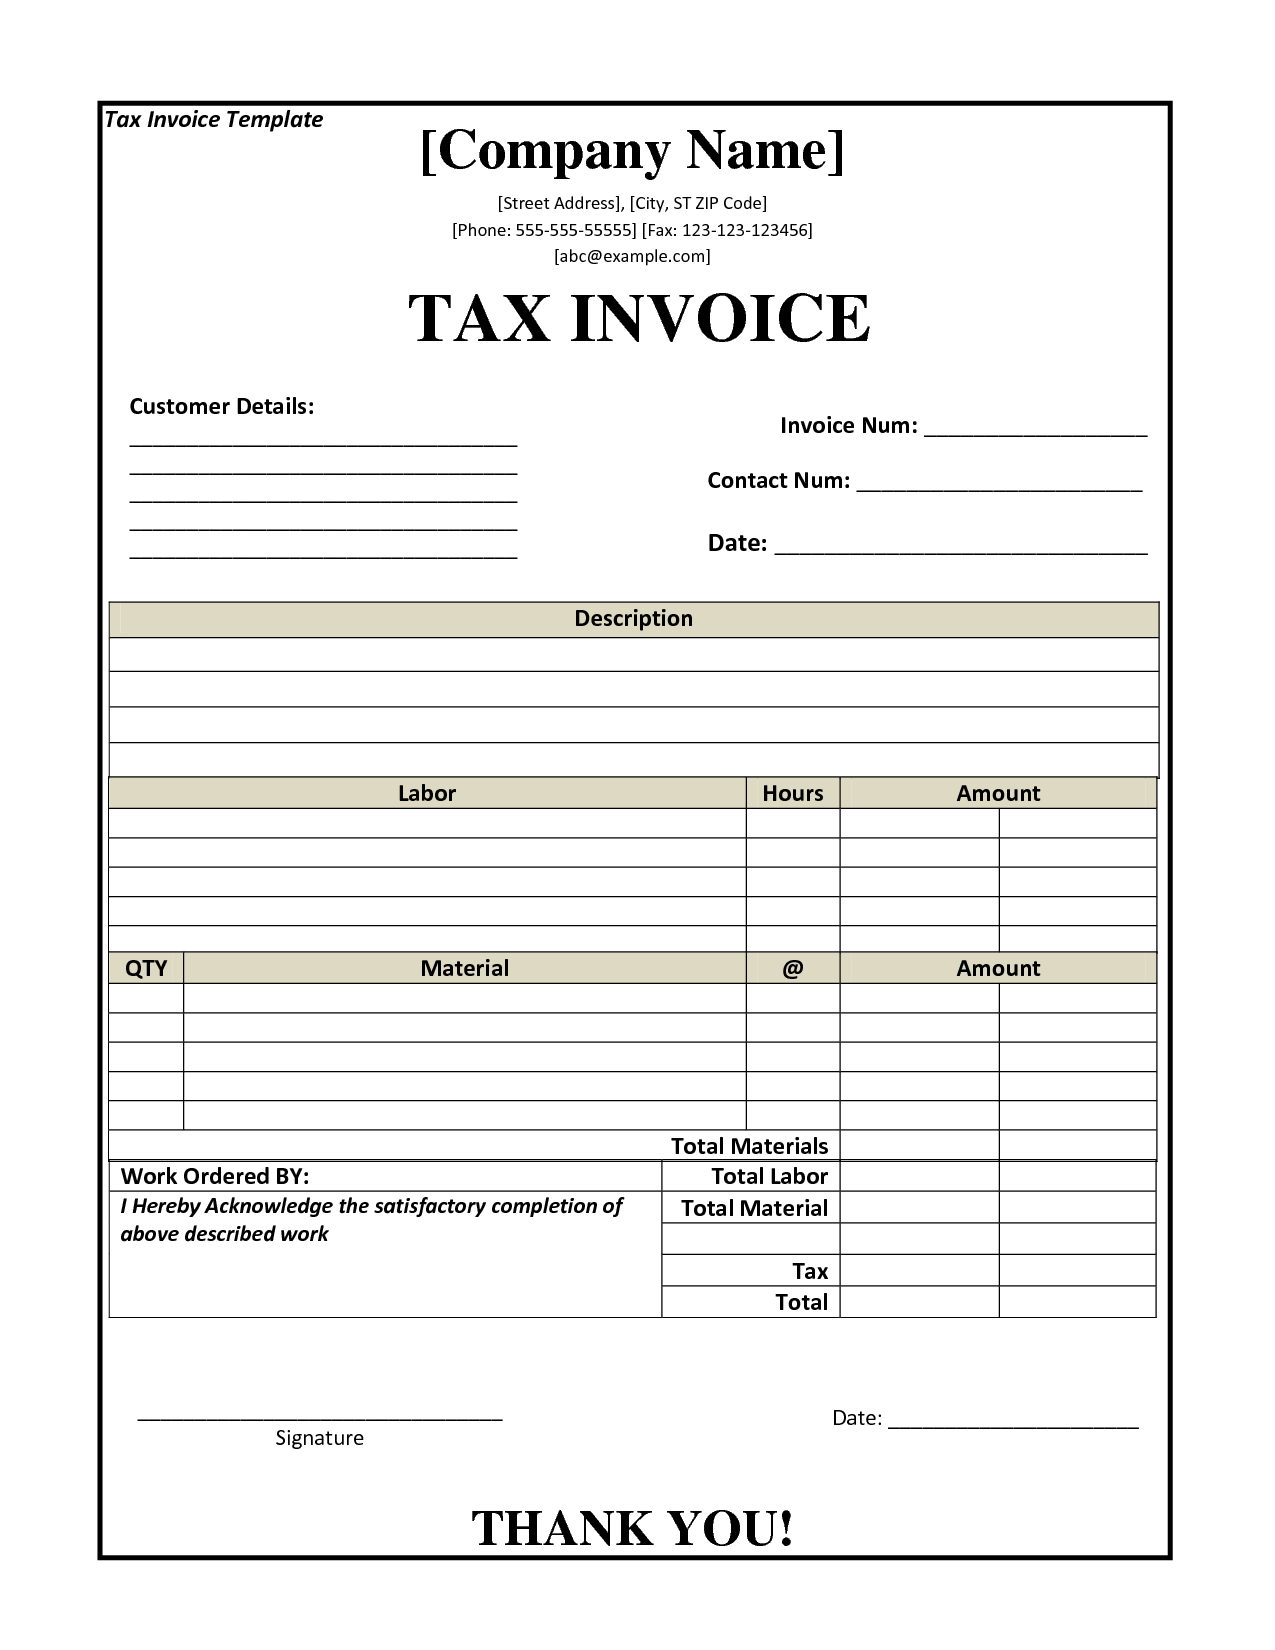 ato tax invoice template – notators, Invoice templates